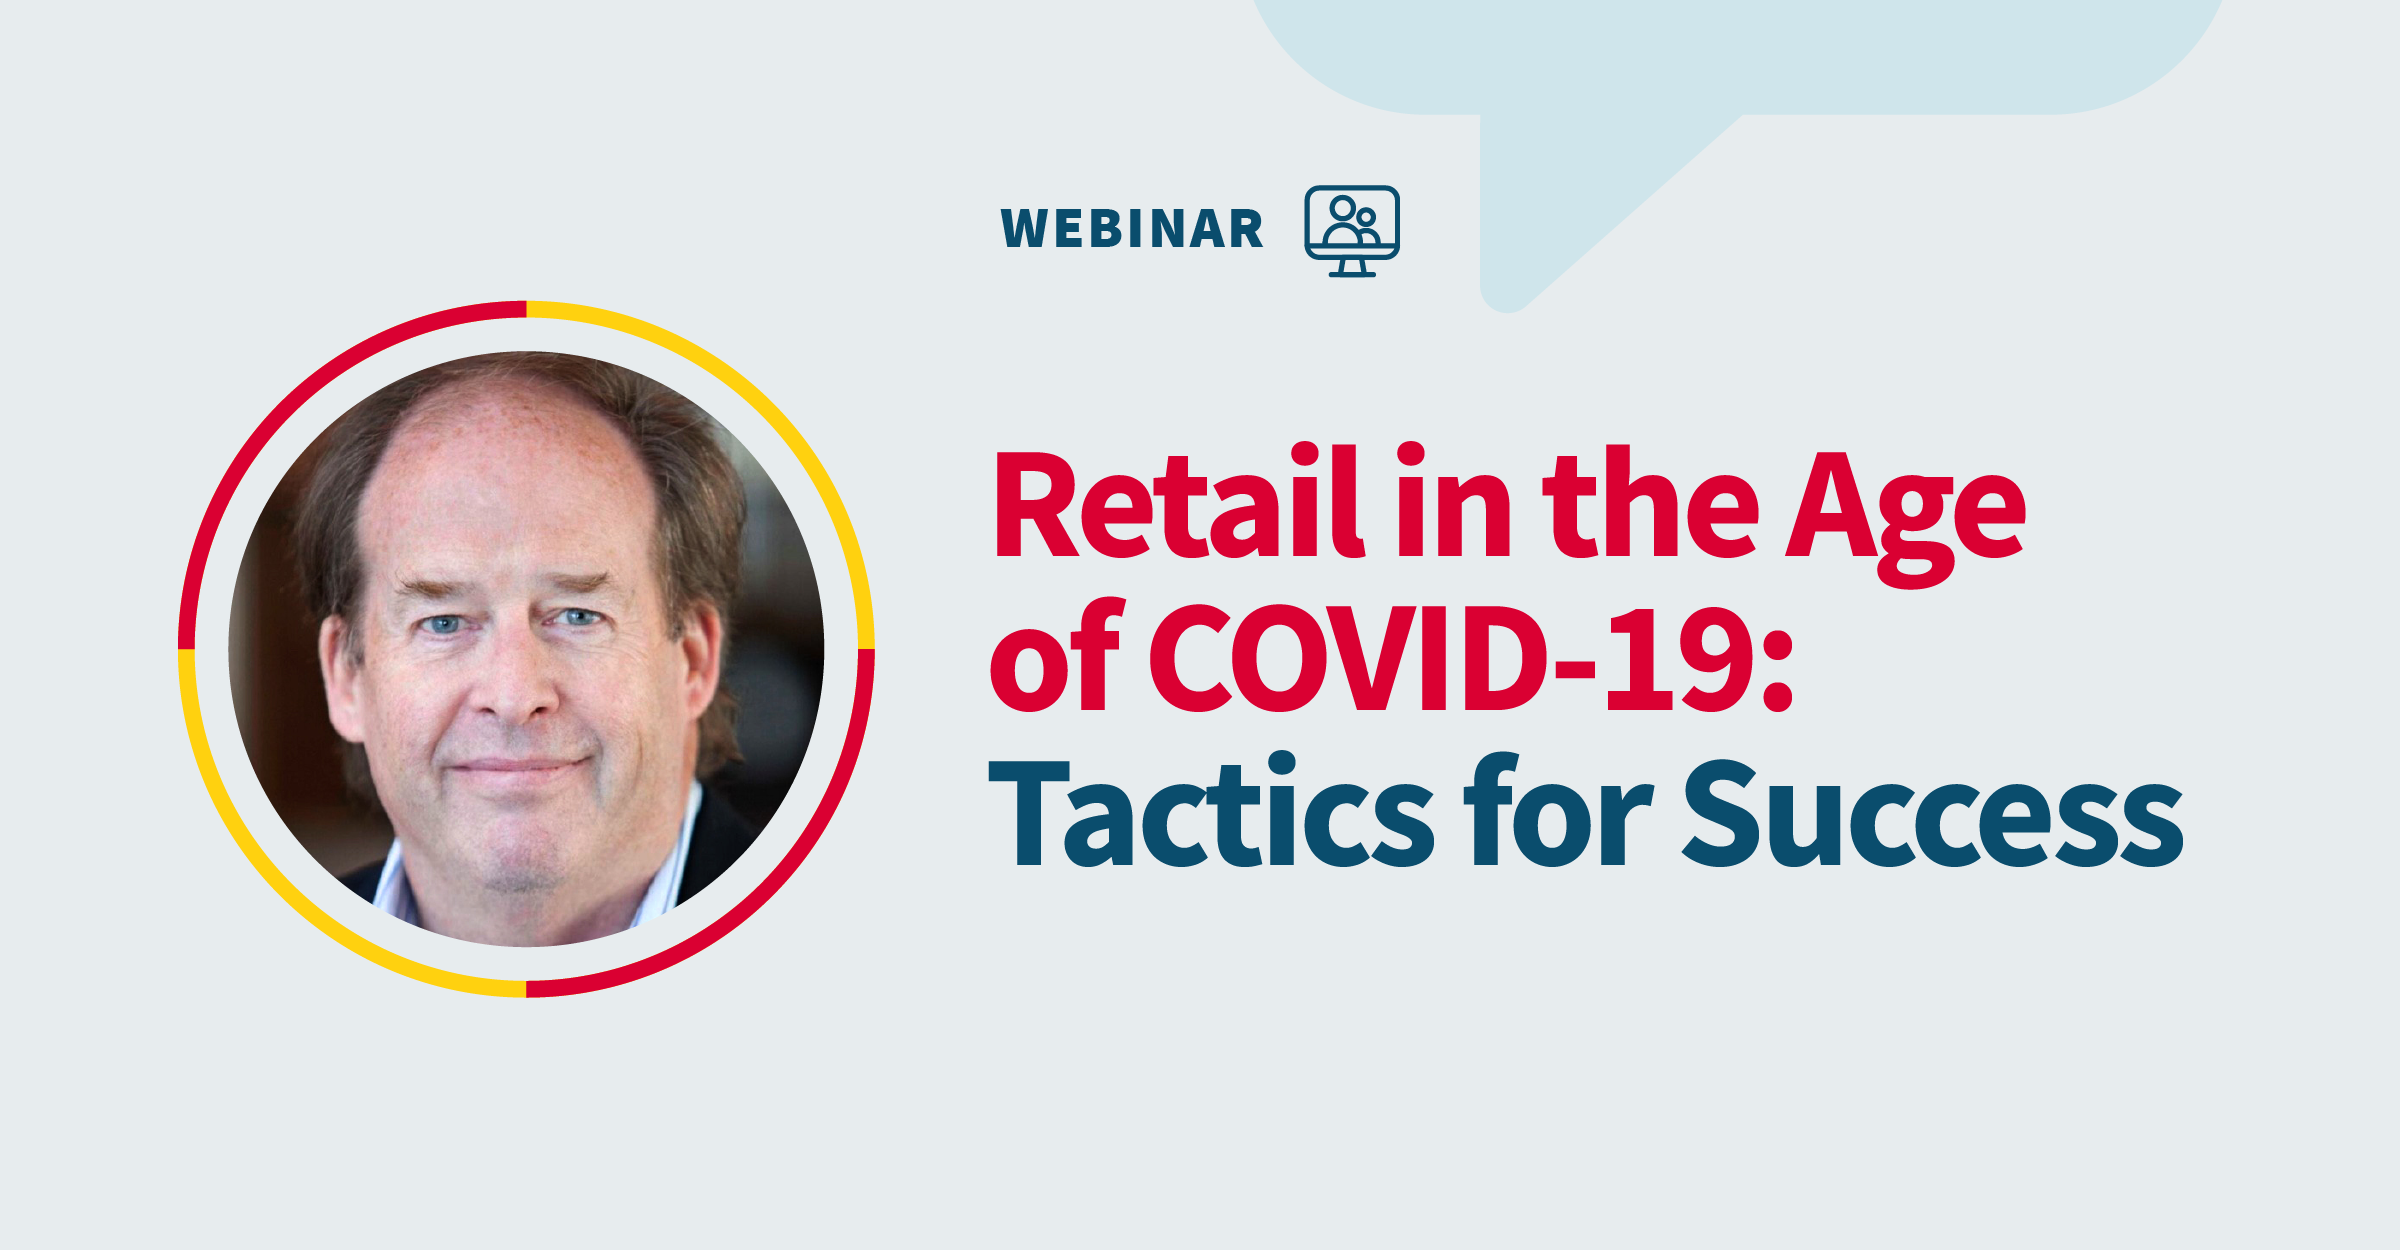 Retail in the age of COVID-19 Webinar